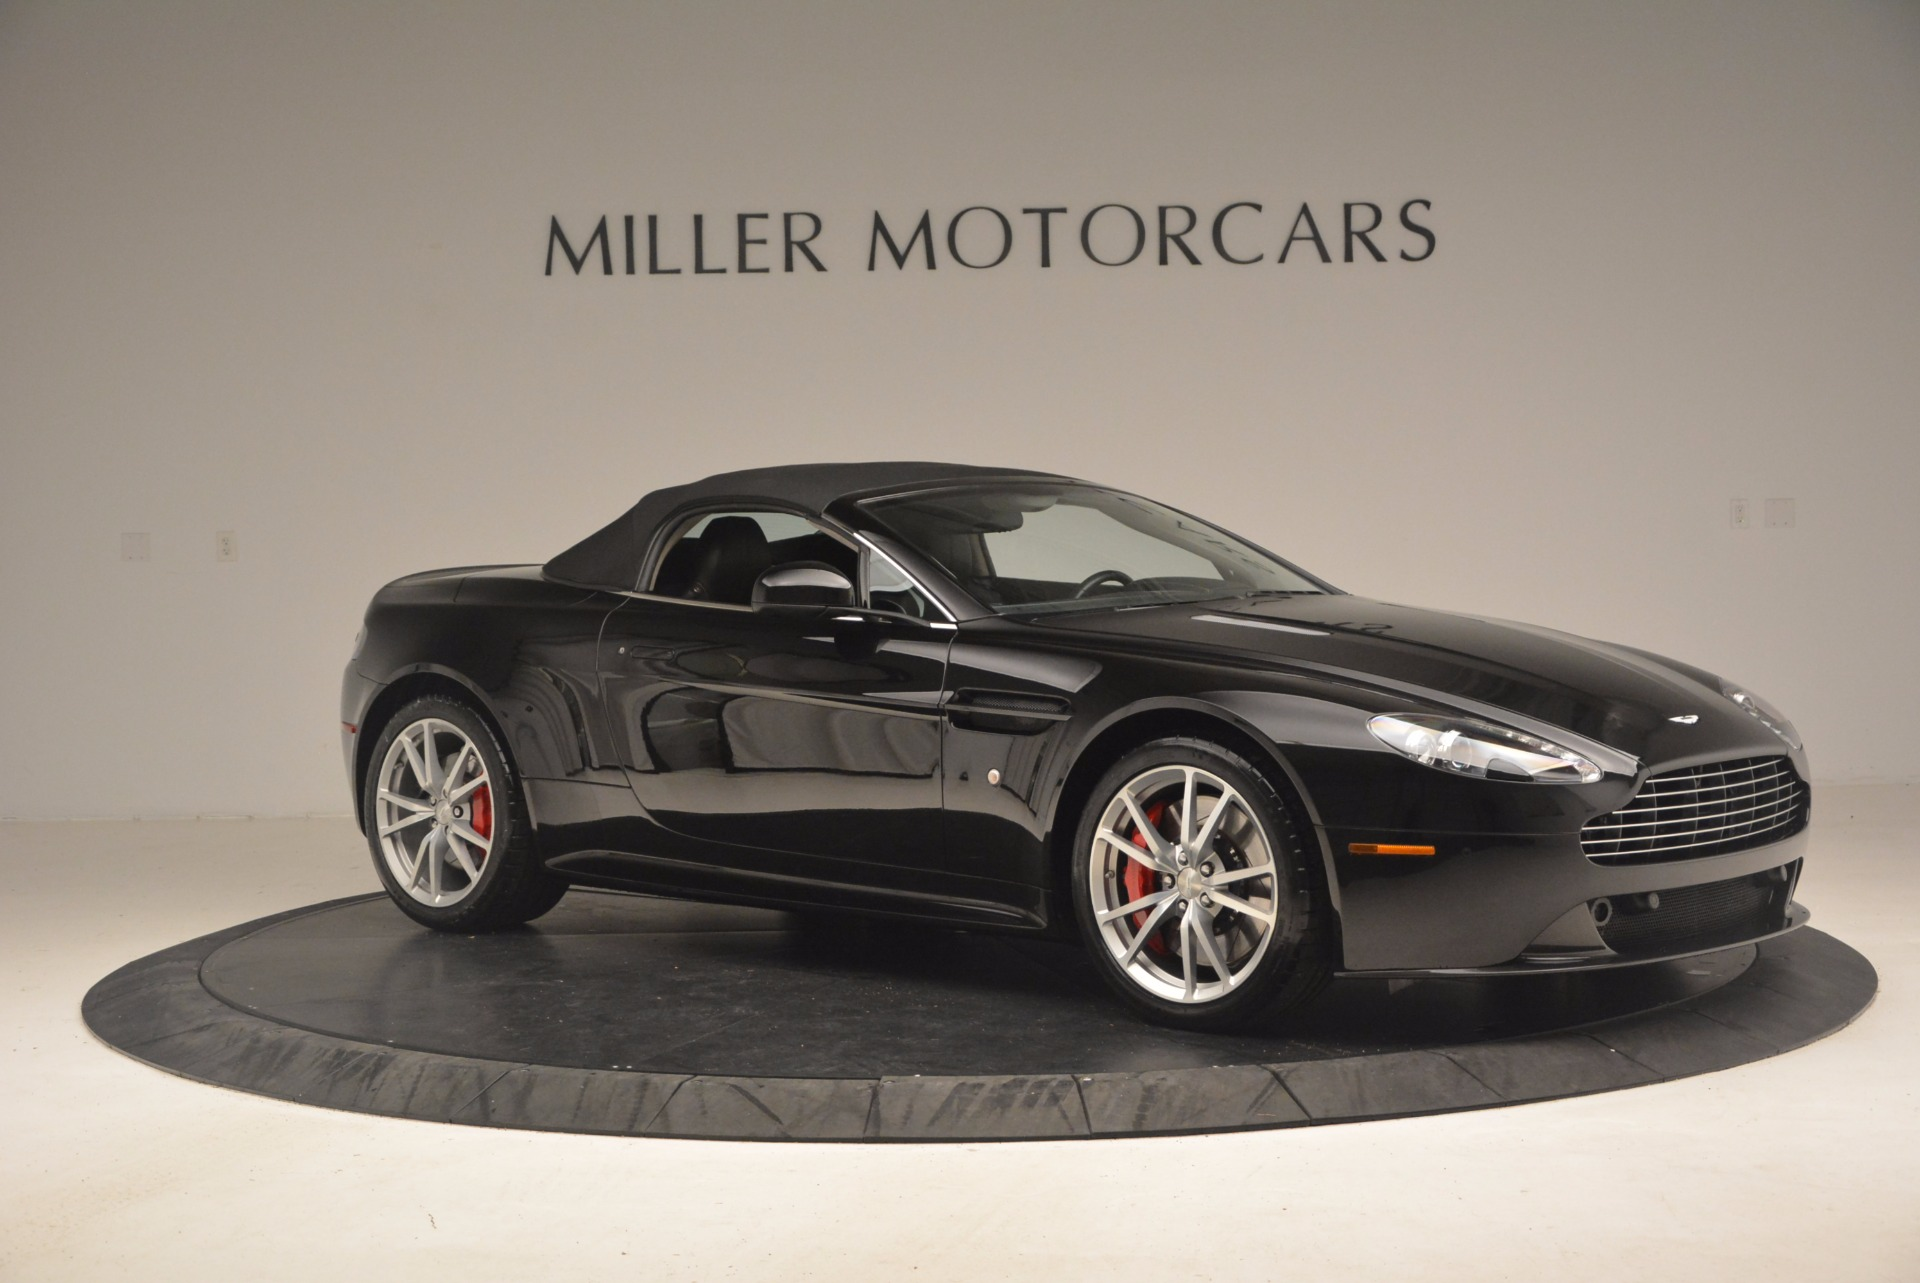 Used 2012 Aston Martin V8 Vantage S Roadster For Sale In Westport, CT 1181_p22